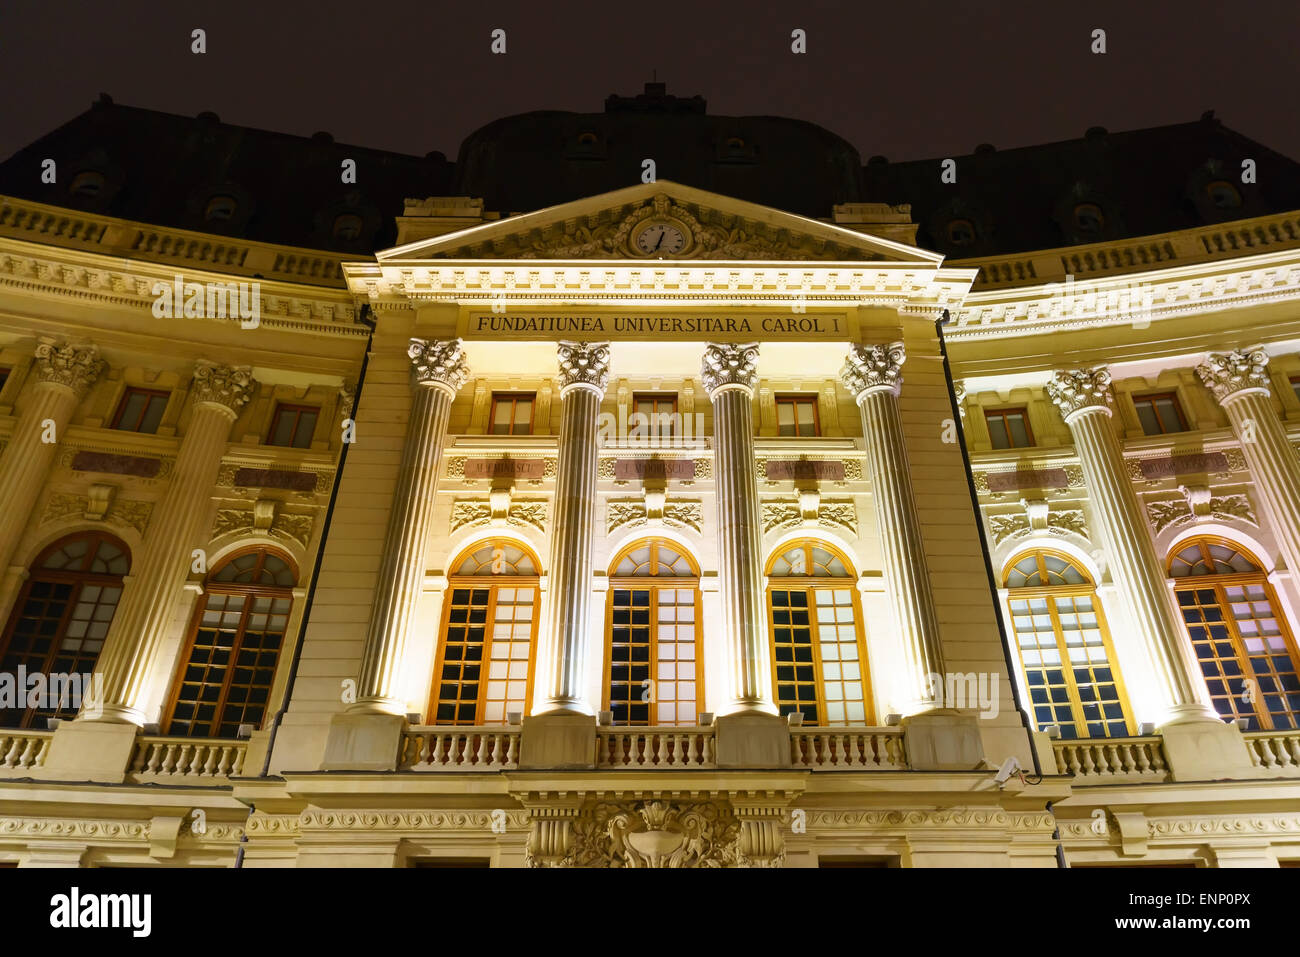 The university library at night in Bucharest, Romania. - Stock Image